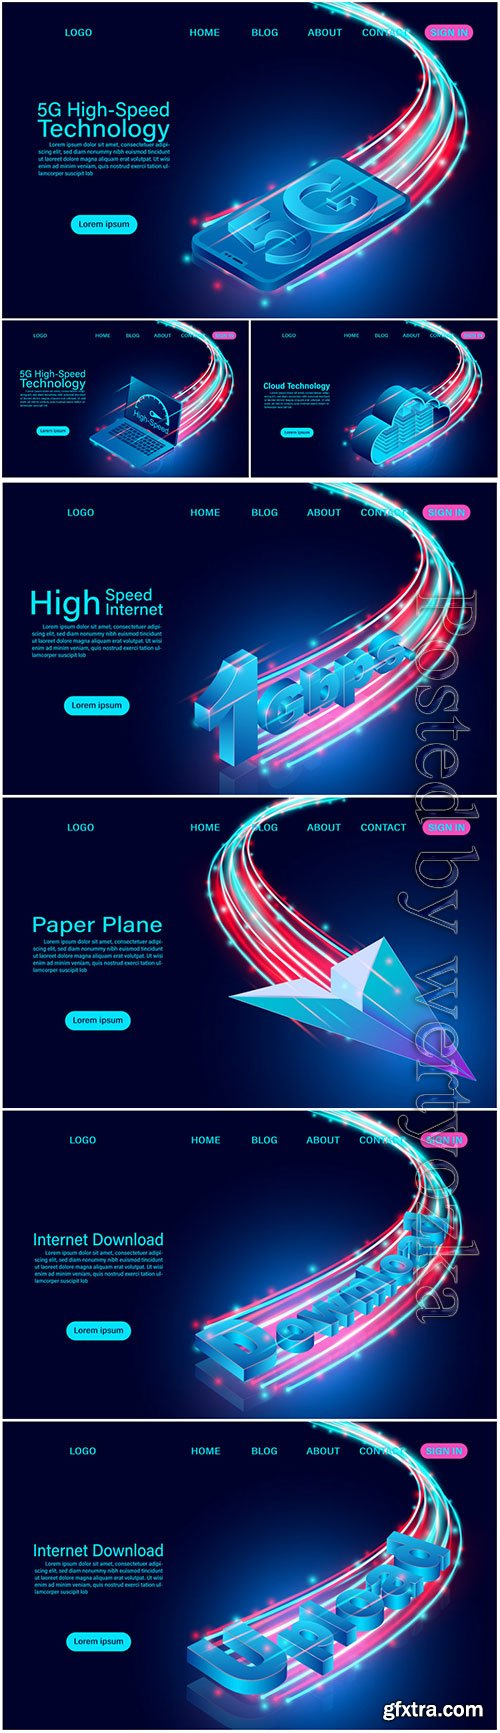 Banner with Internet concept isometric illustration